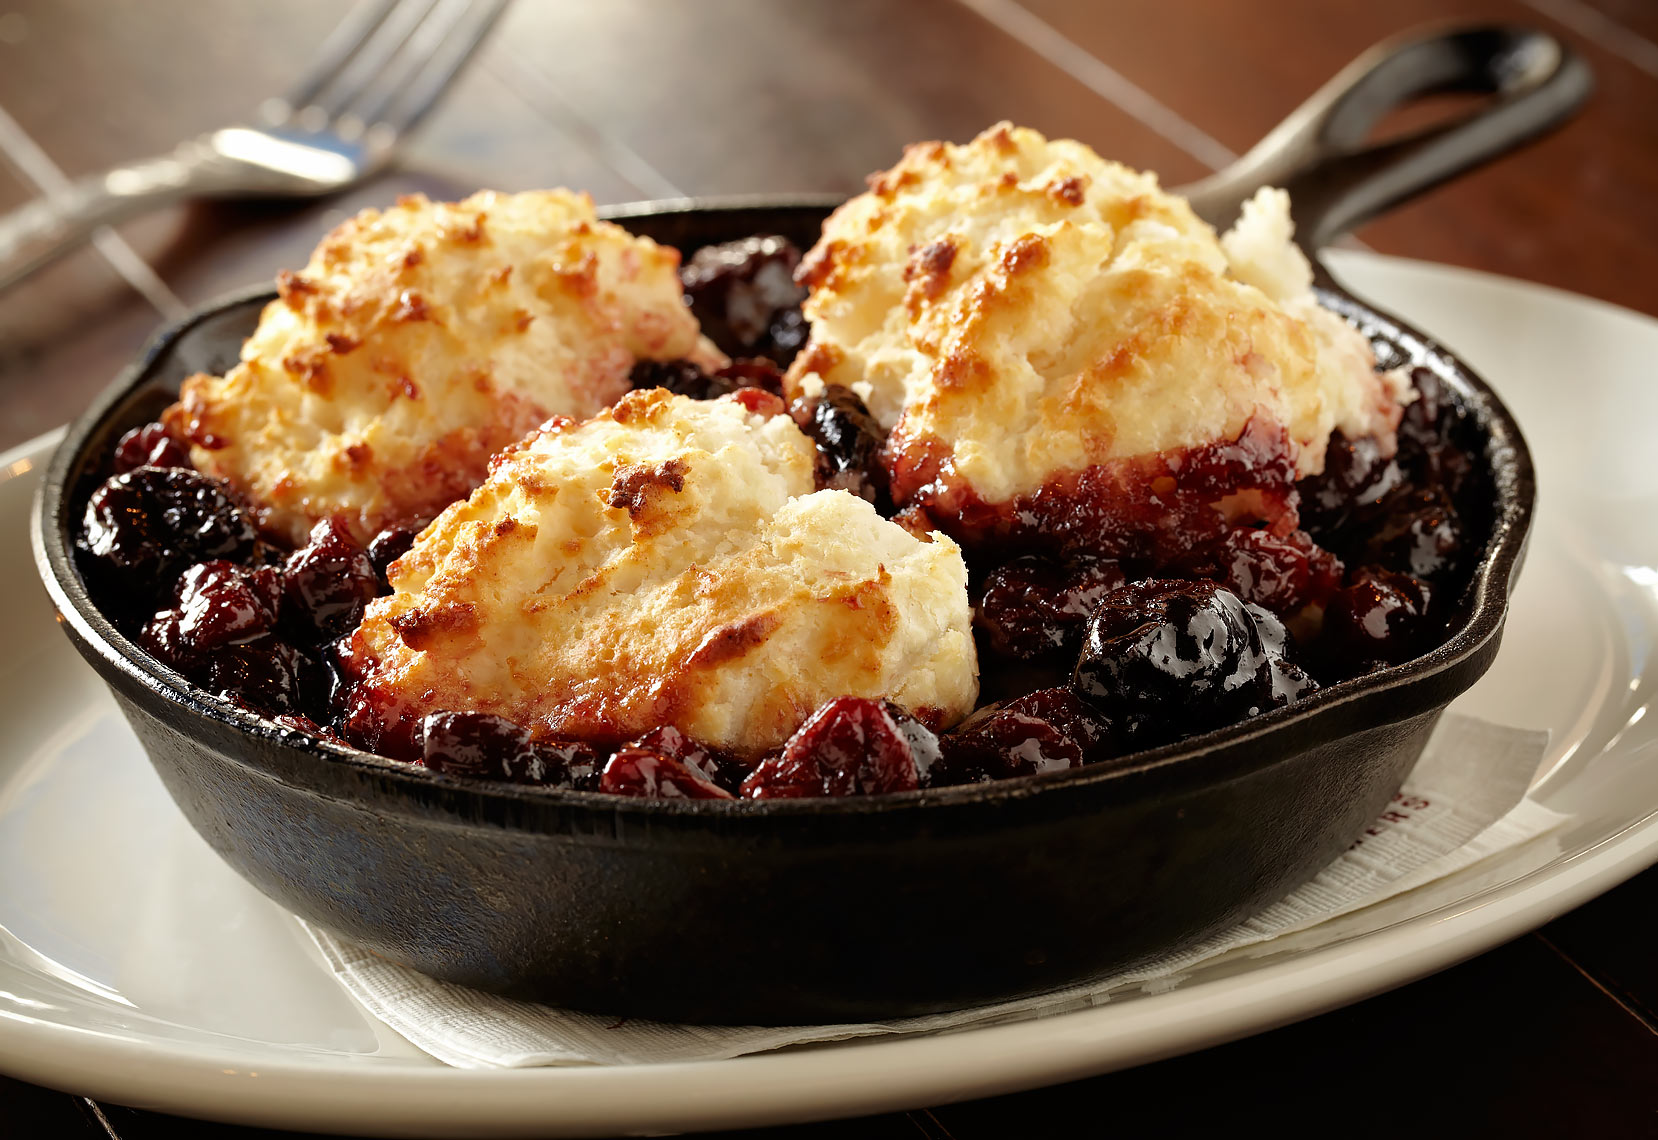 FOOD-Desserts11-Farmers-Fishers-Blueberry-Skillet